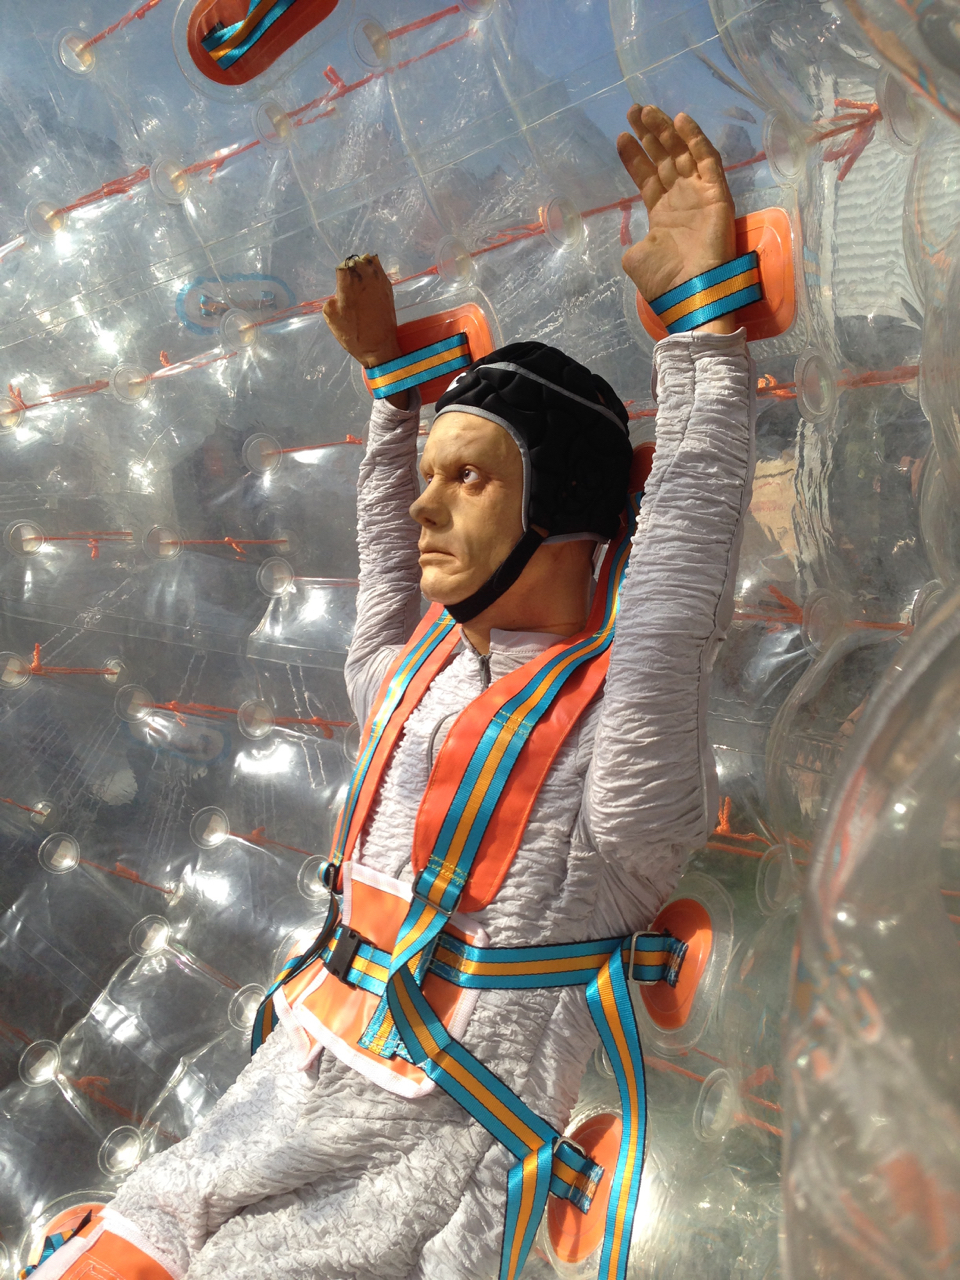 Inside the ZORB there was an actual stunt-man we sourced in Chile for the shoot. They had this dummy in for the test day.